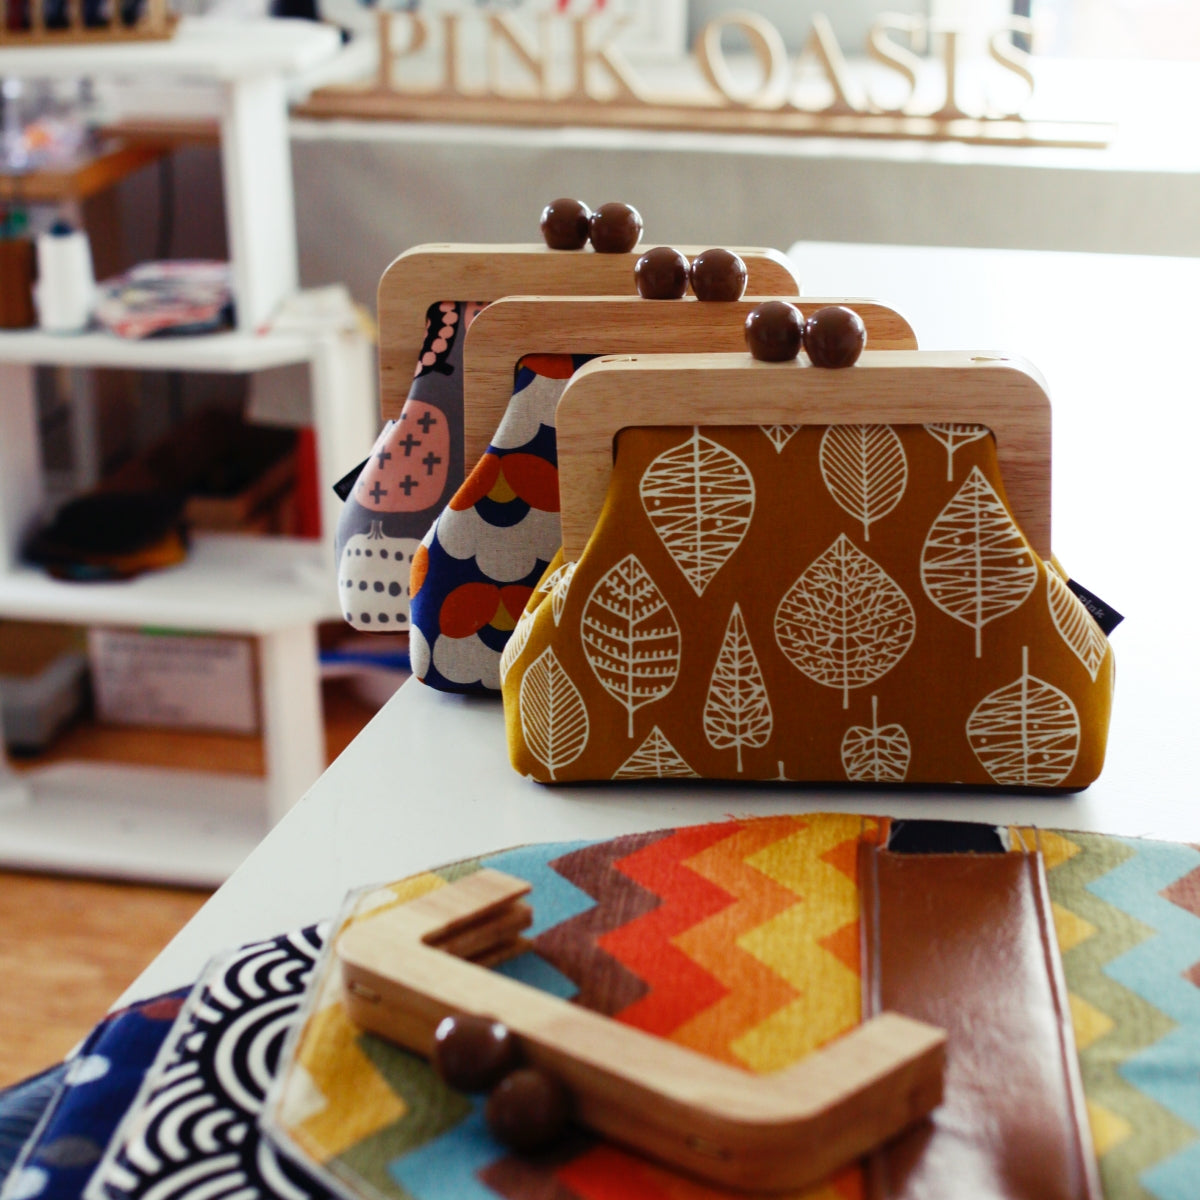 Handmade Clutches and Leather Bags Studio | PINKOASIS